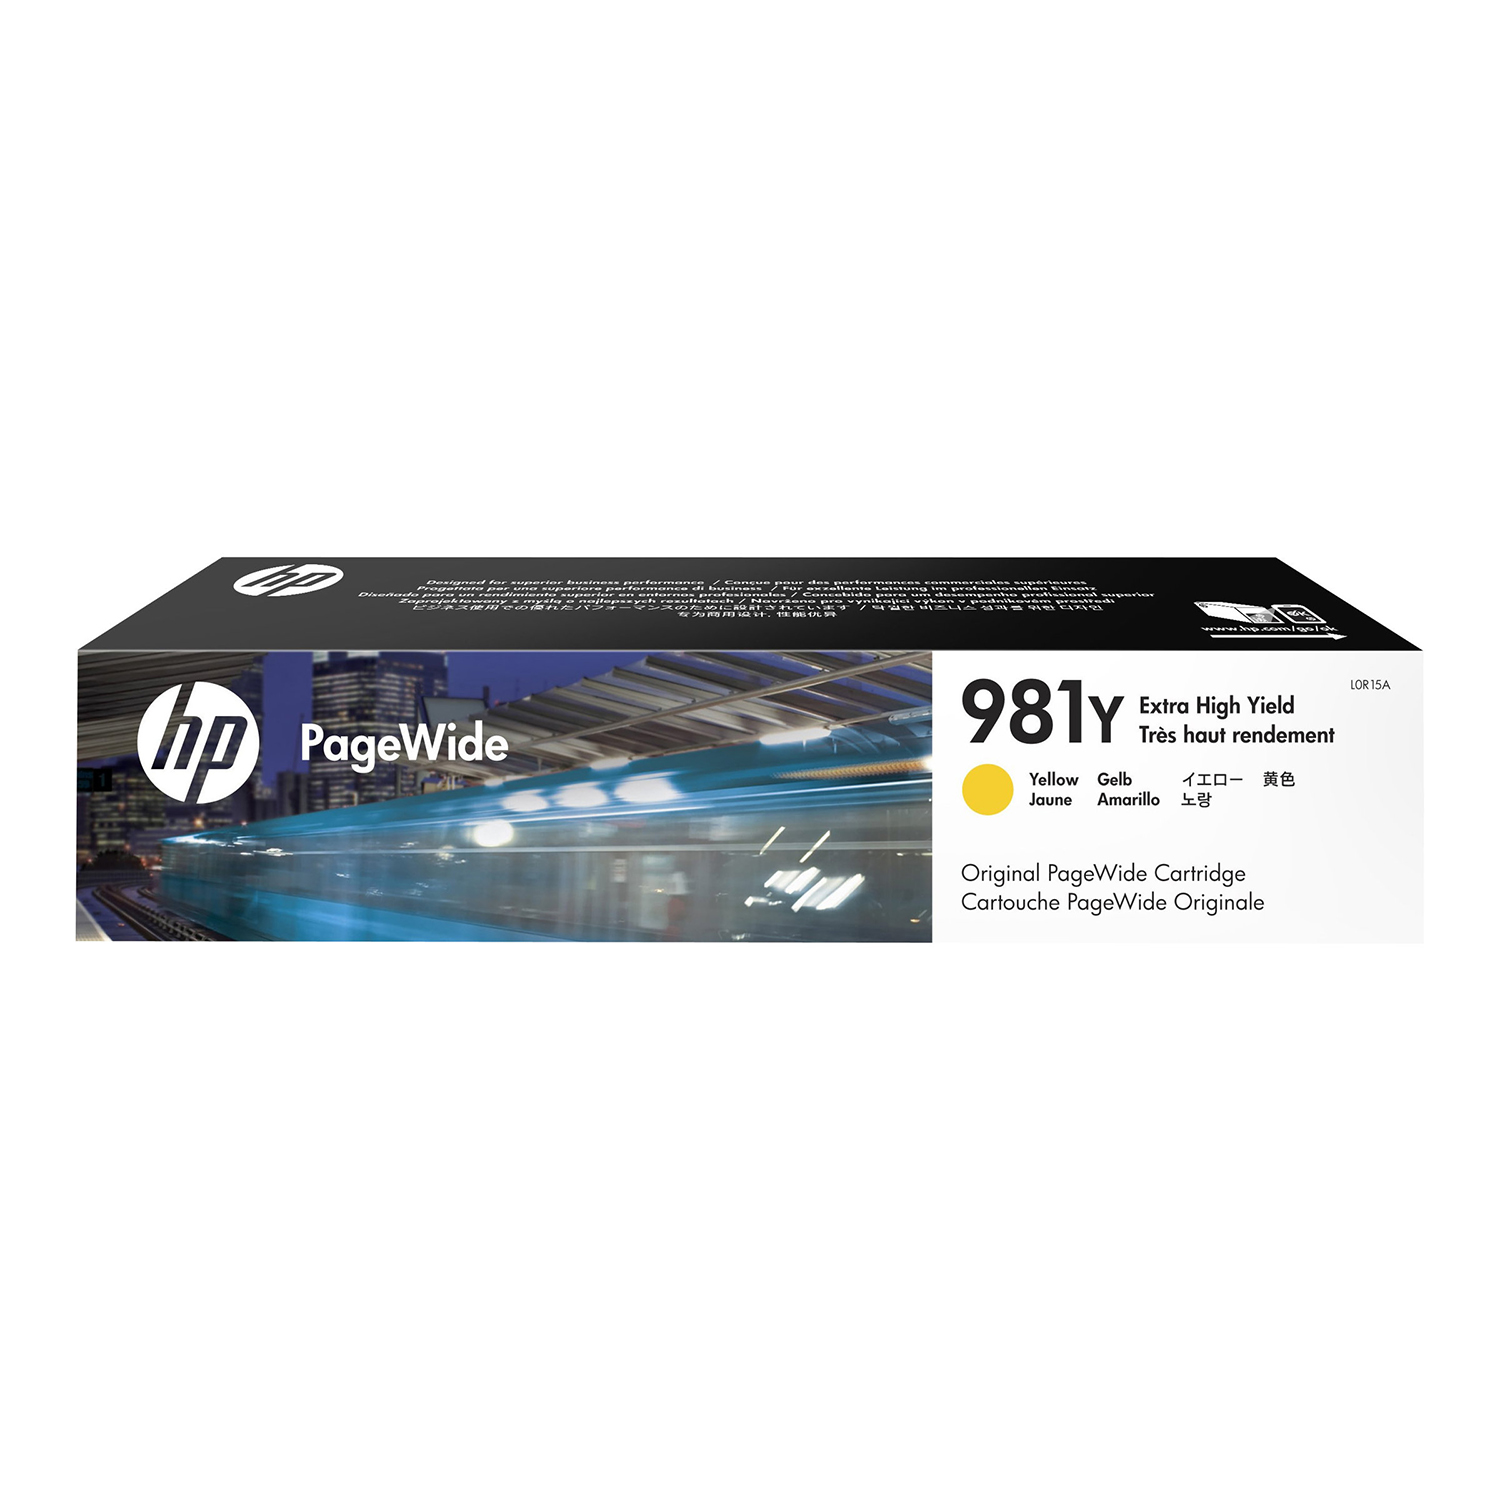 Hewlett Packard 981Y Pagewide Ink Cartridge Extra High Yield 16000pp 182.5ml Yellow Ref L0R15A